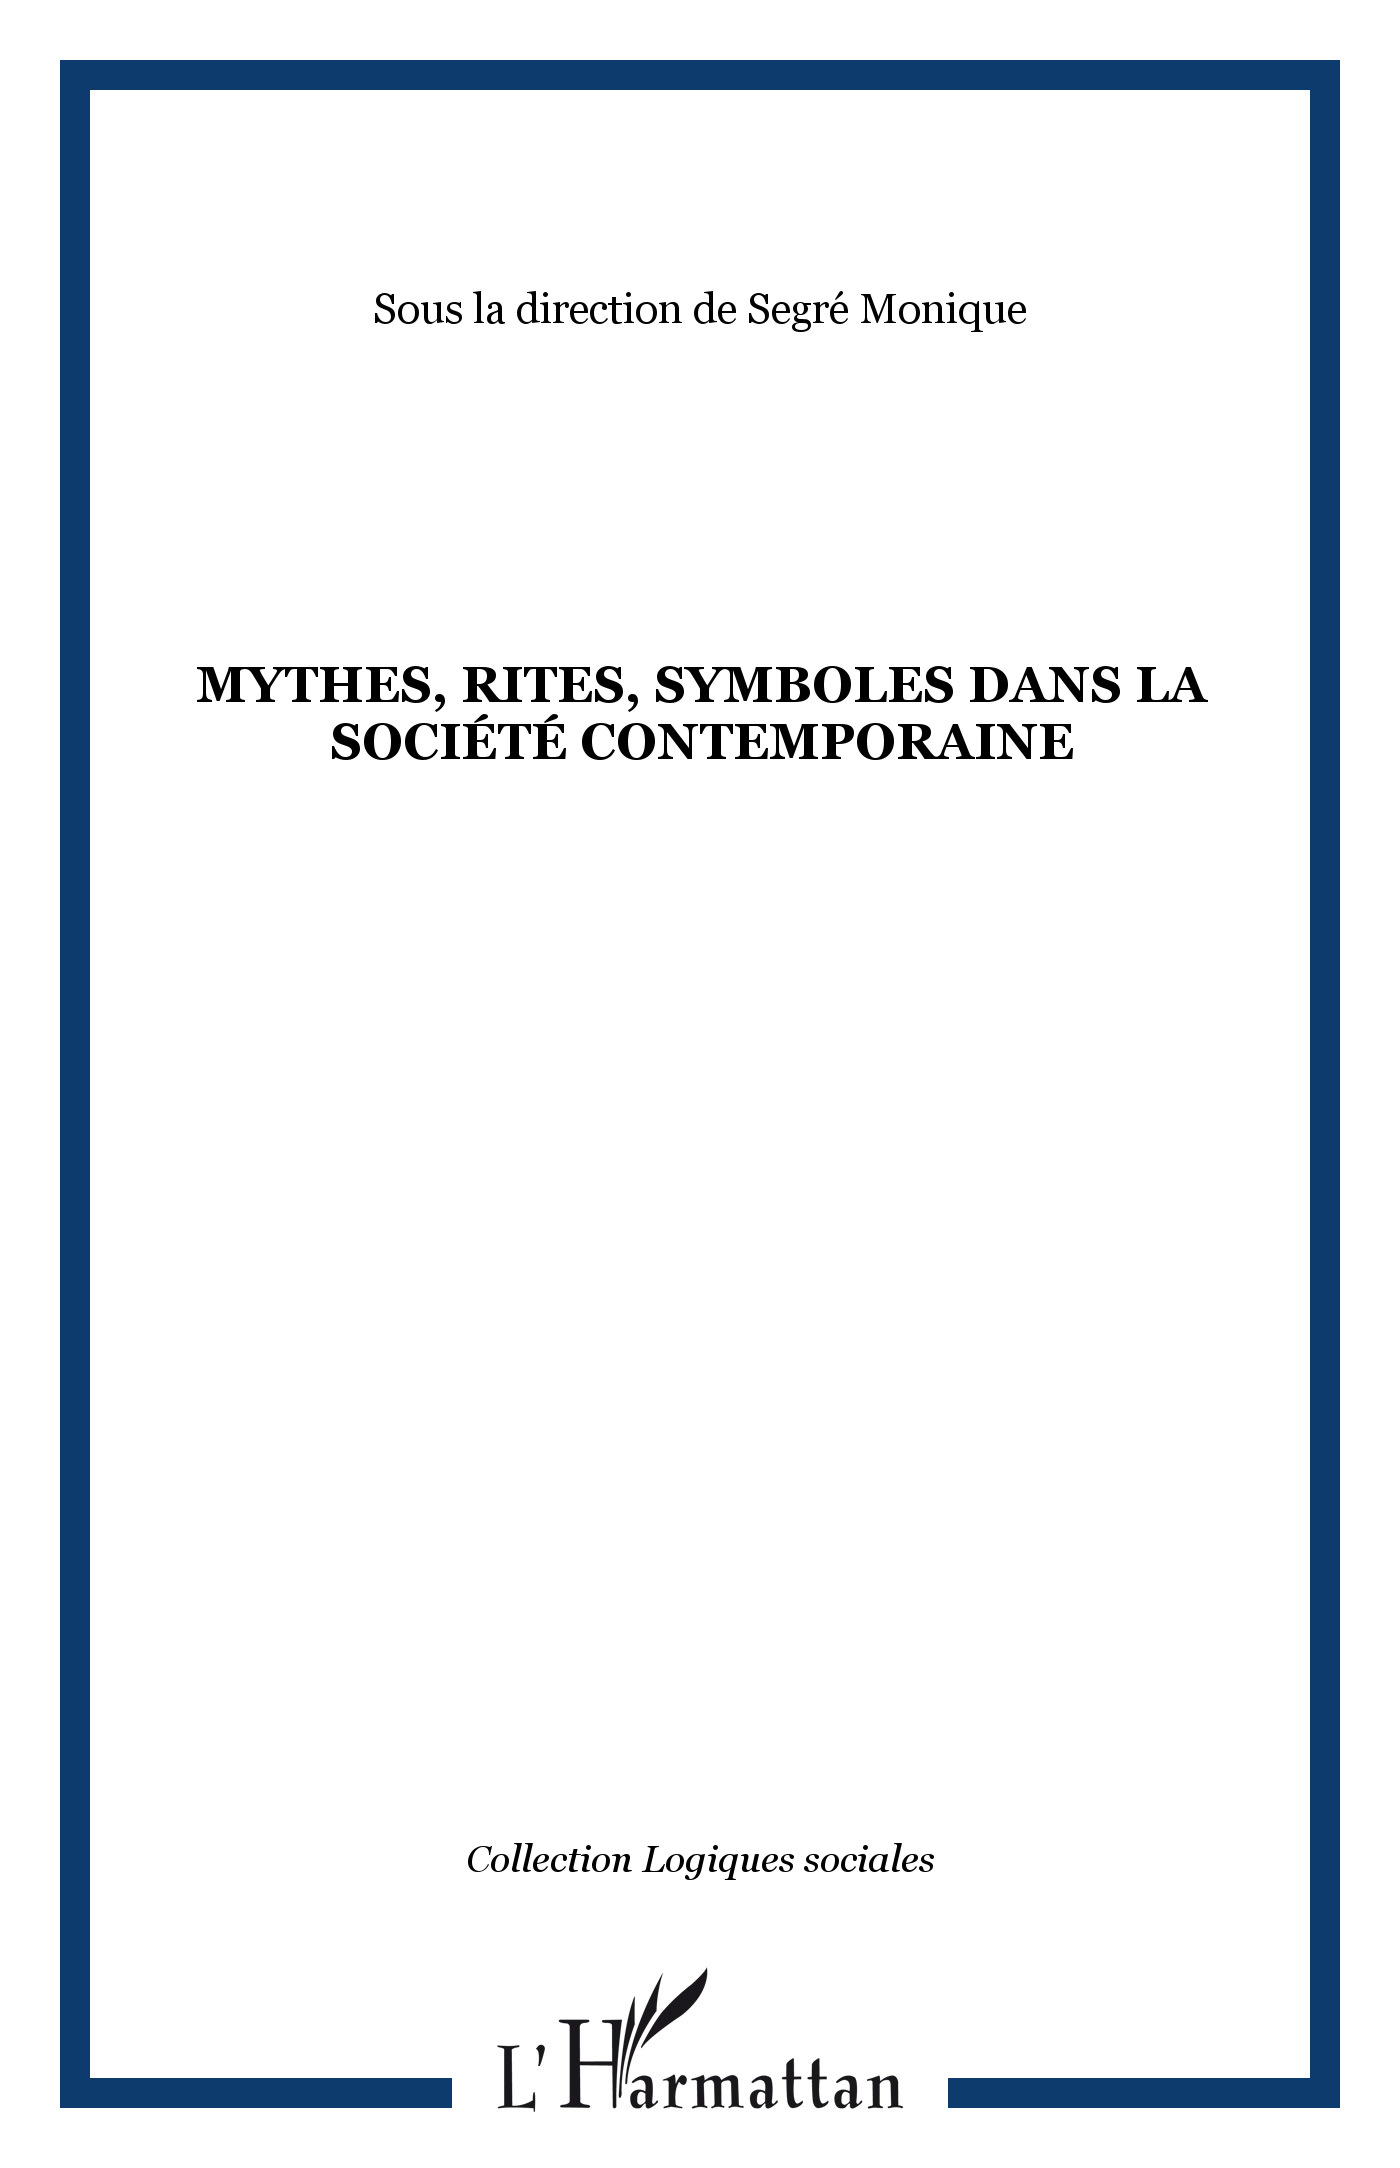 Mythes, rites,